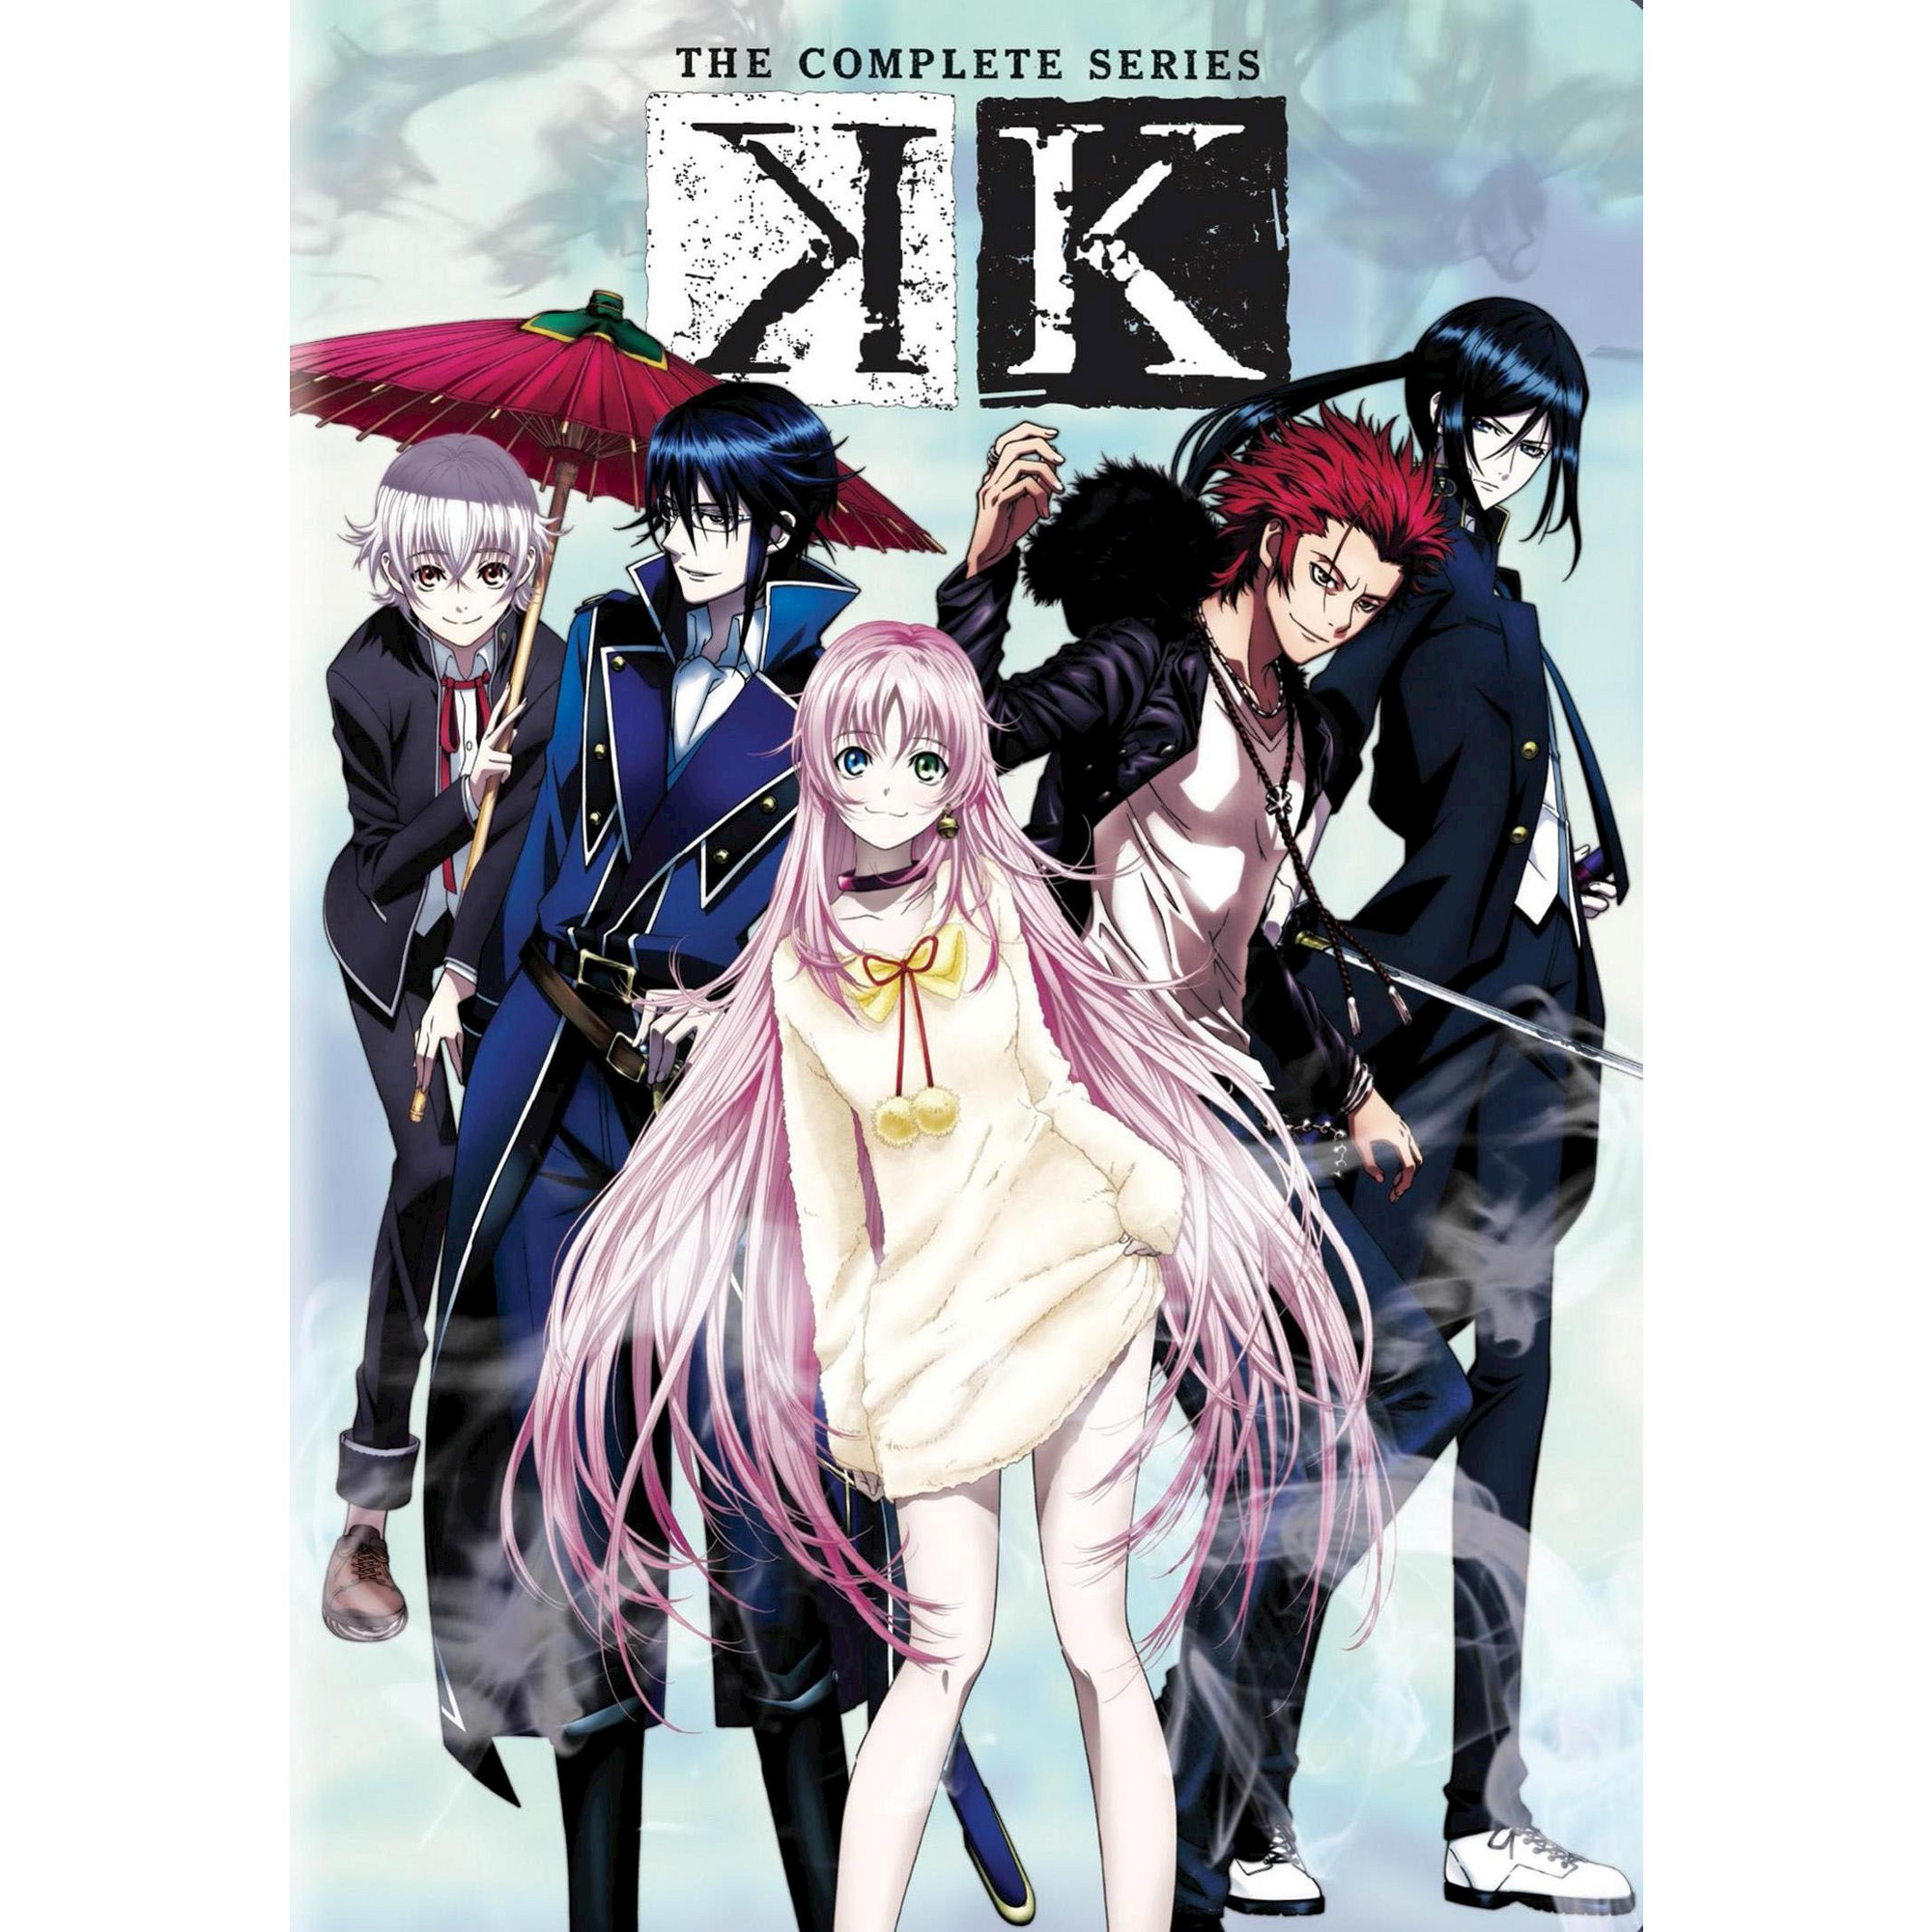 KComplete Series Dvd Movies